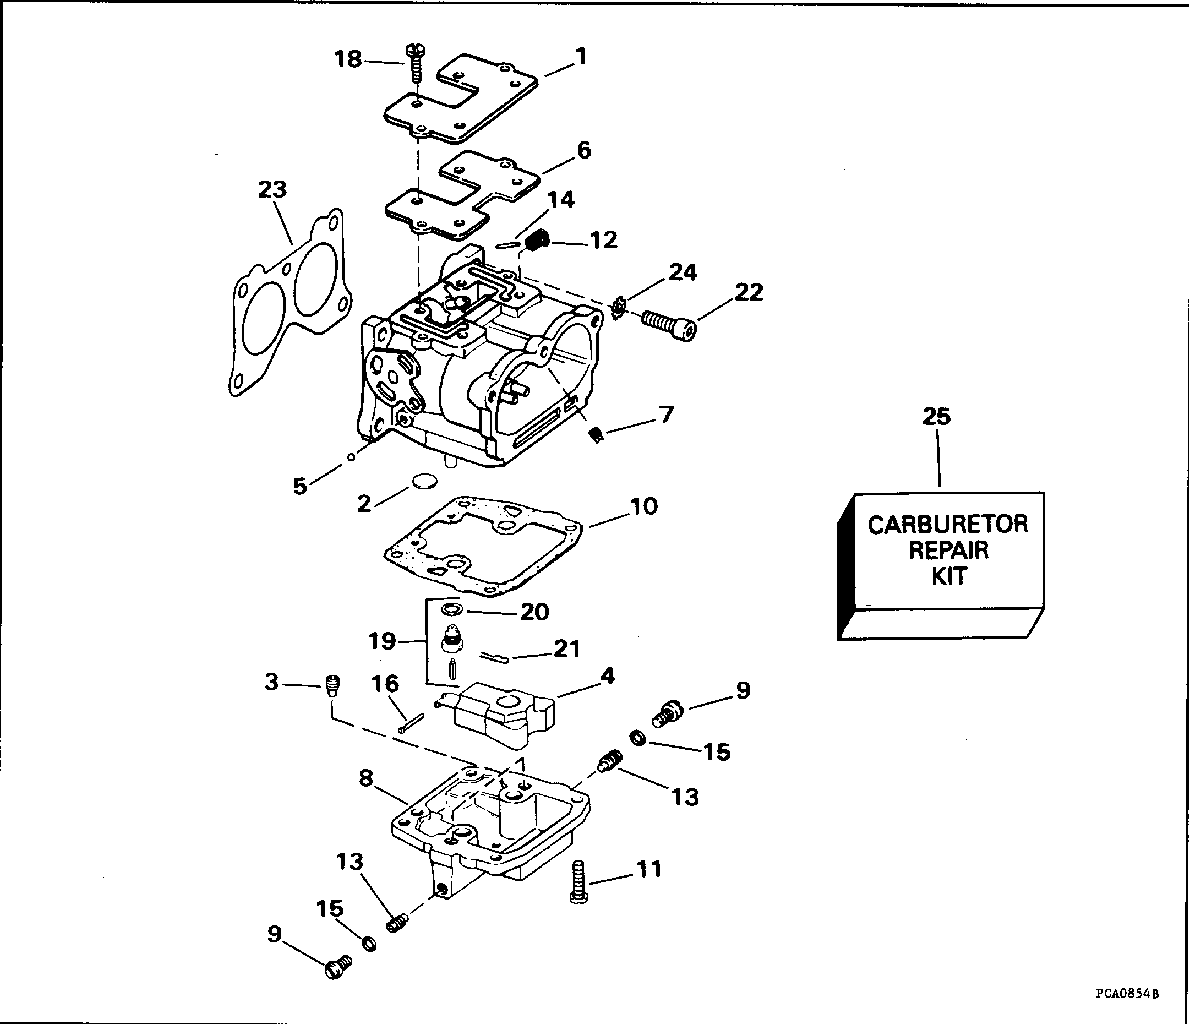 Johnson 9 9 Carburetor Diagram